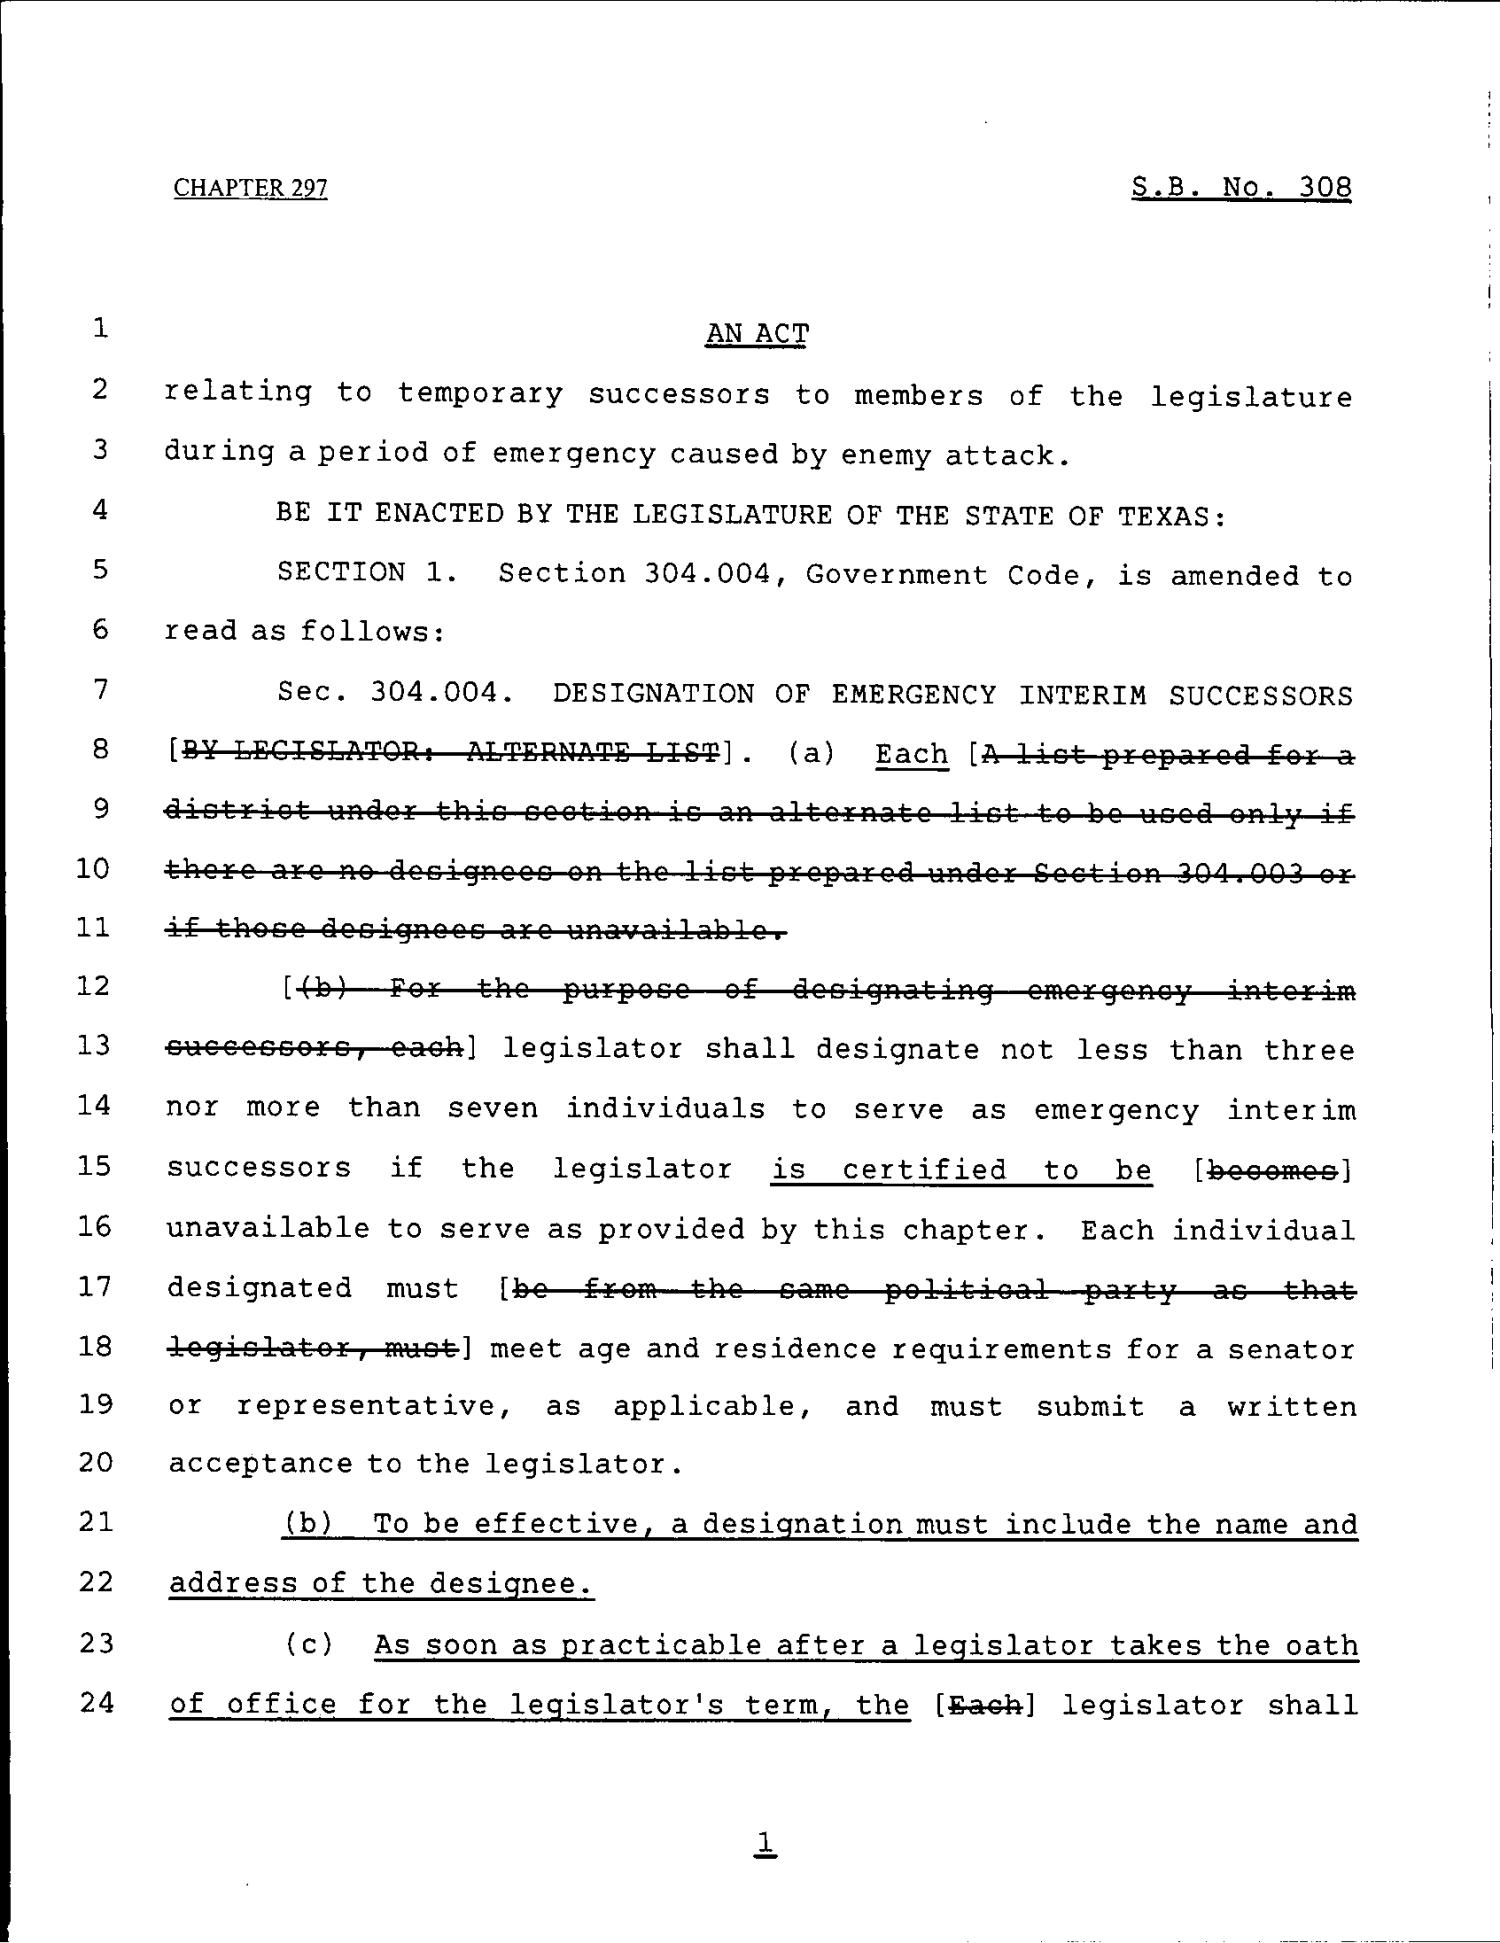 79th Texas Legislature, Regular Session, Senate Bill 308, Chapter 297                                                                                                      [Sequence #]: 1 of 8